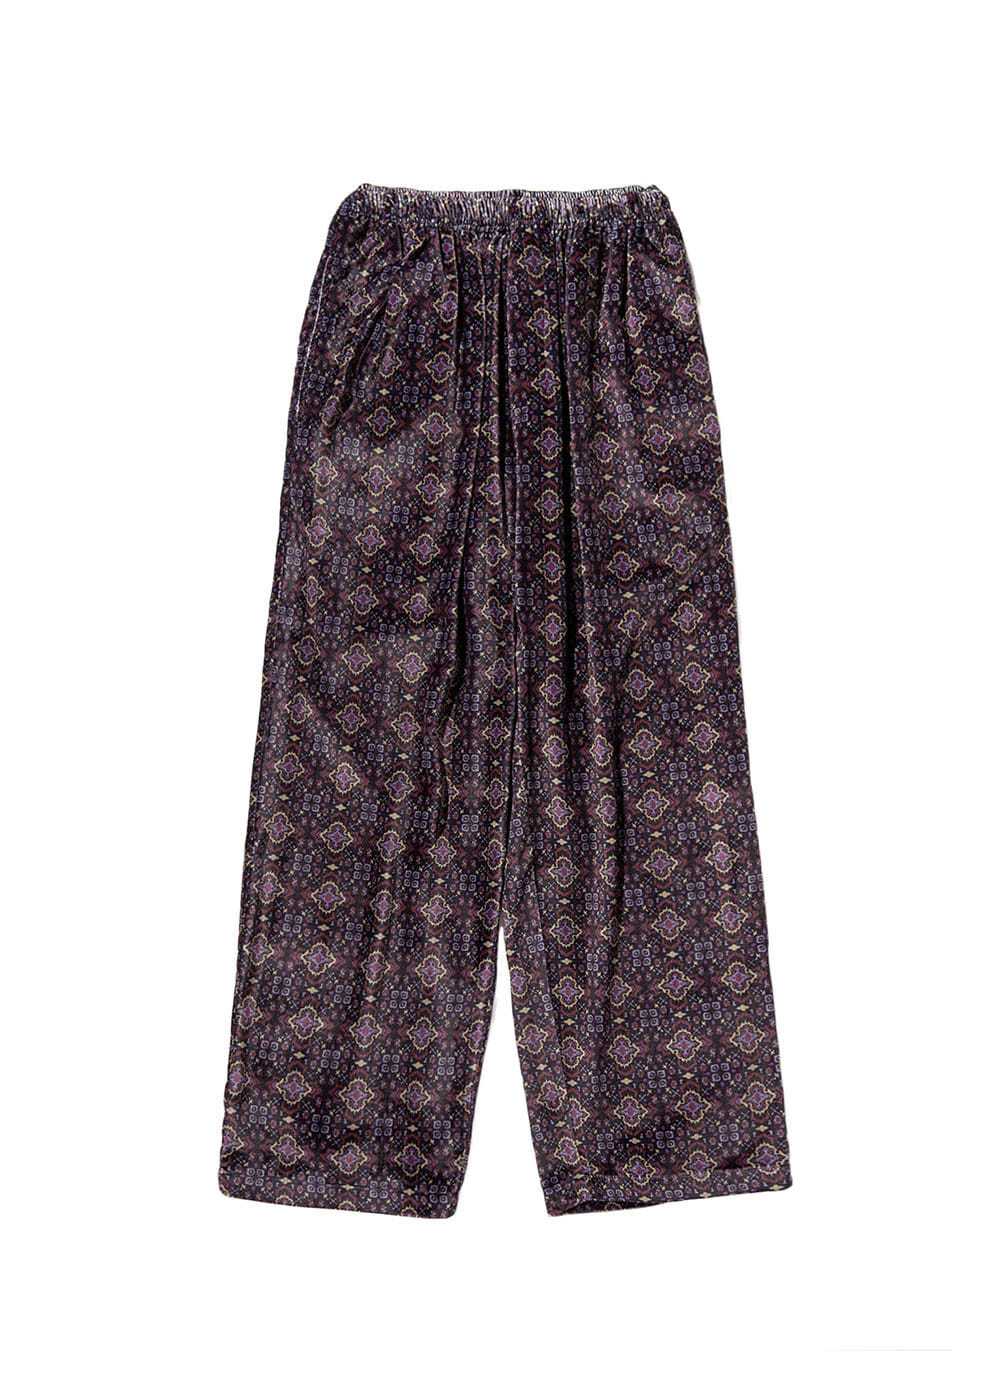 LMC ARABIC VELOUR EASY PANTS purple